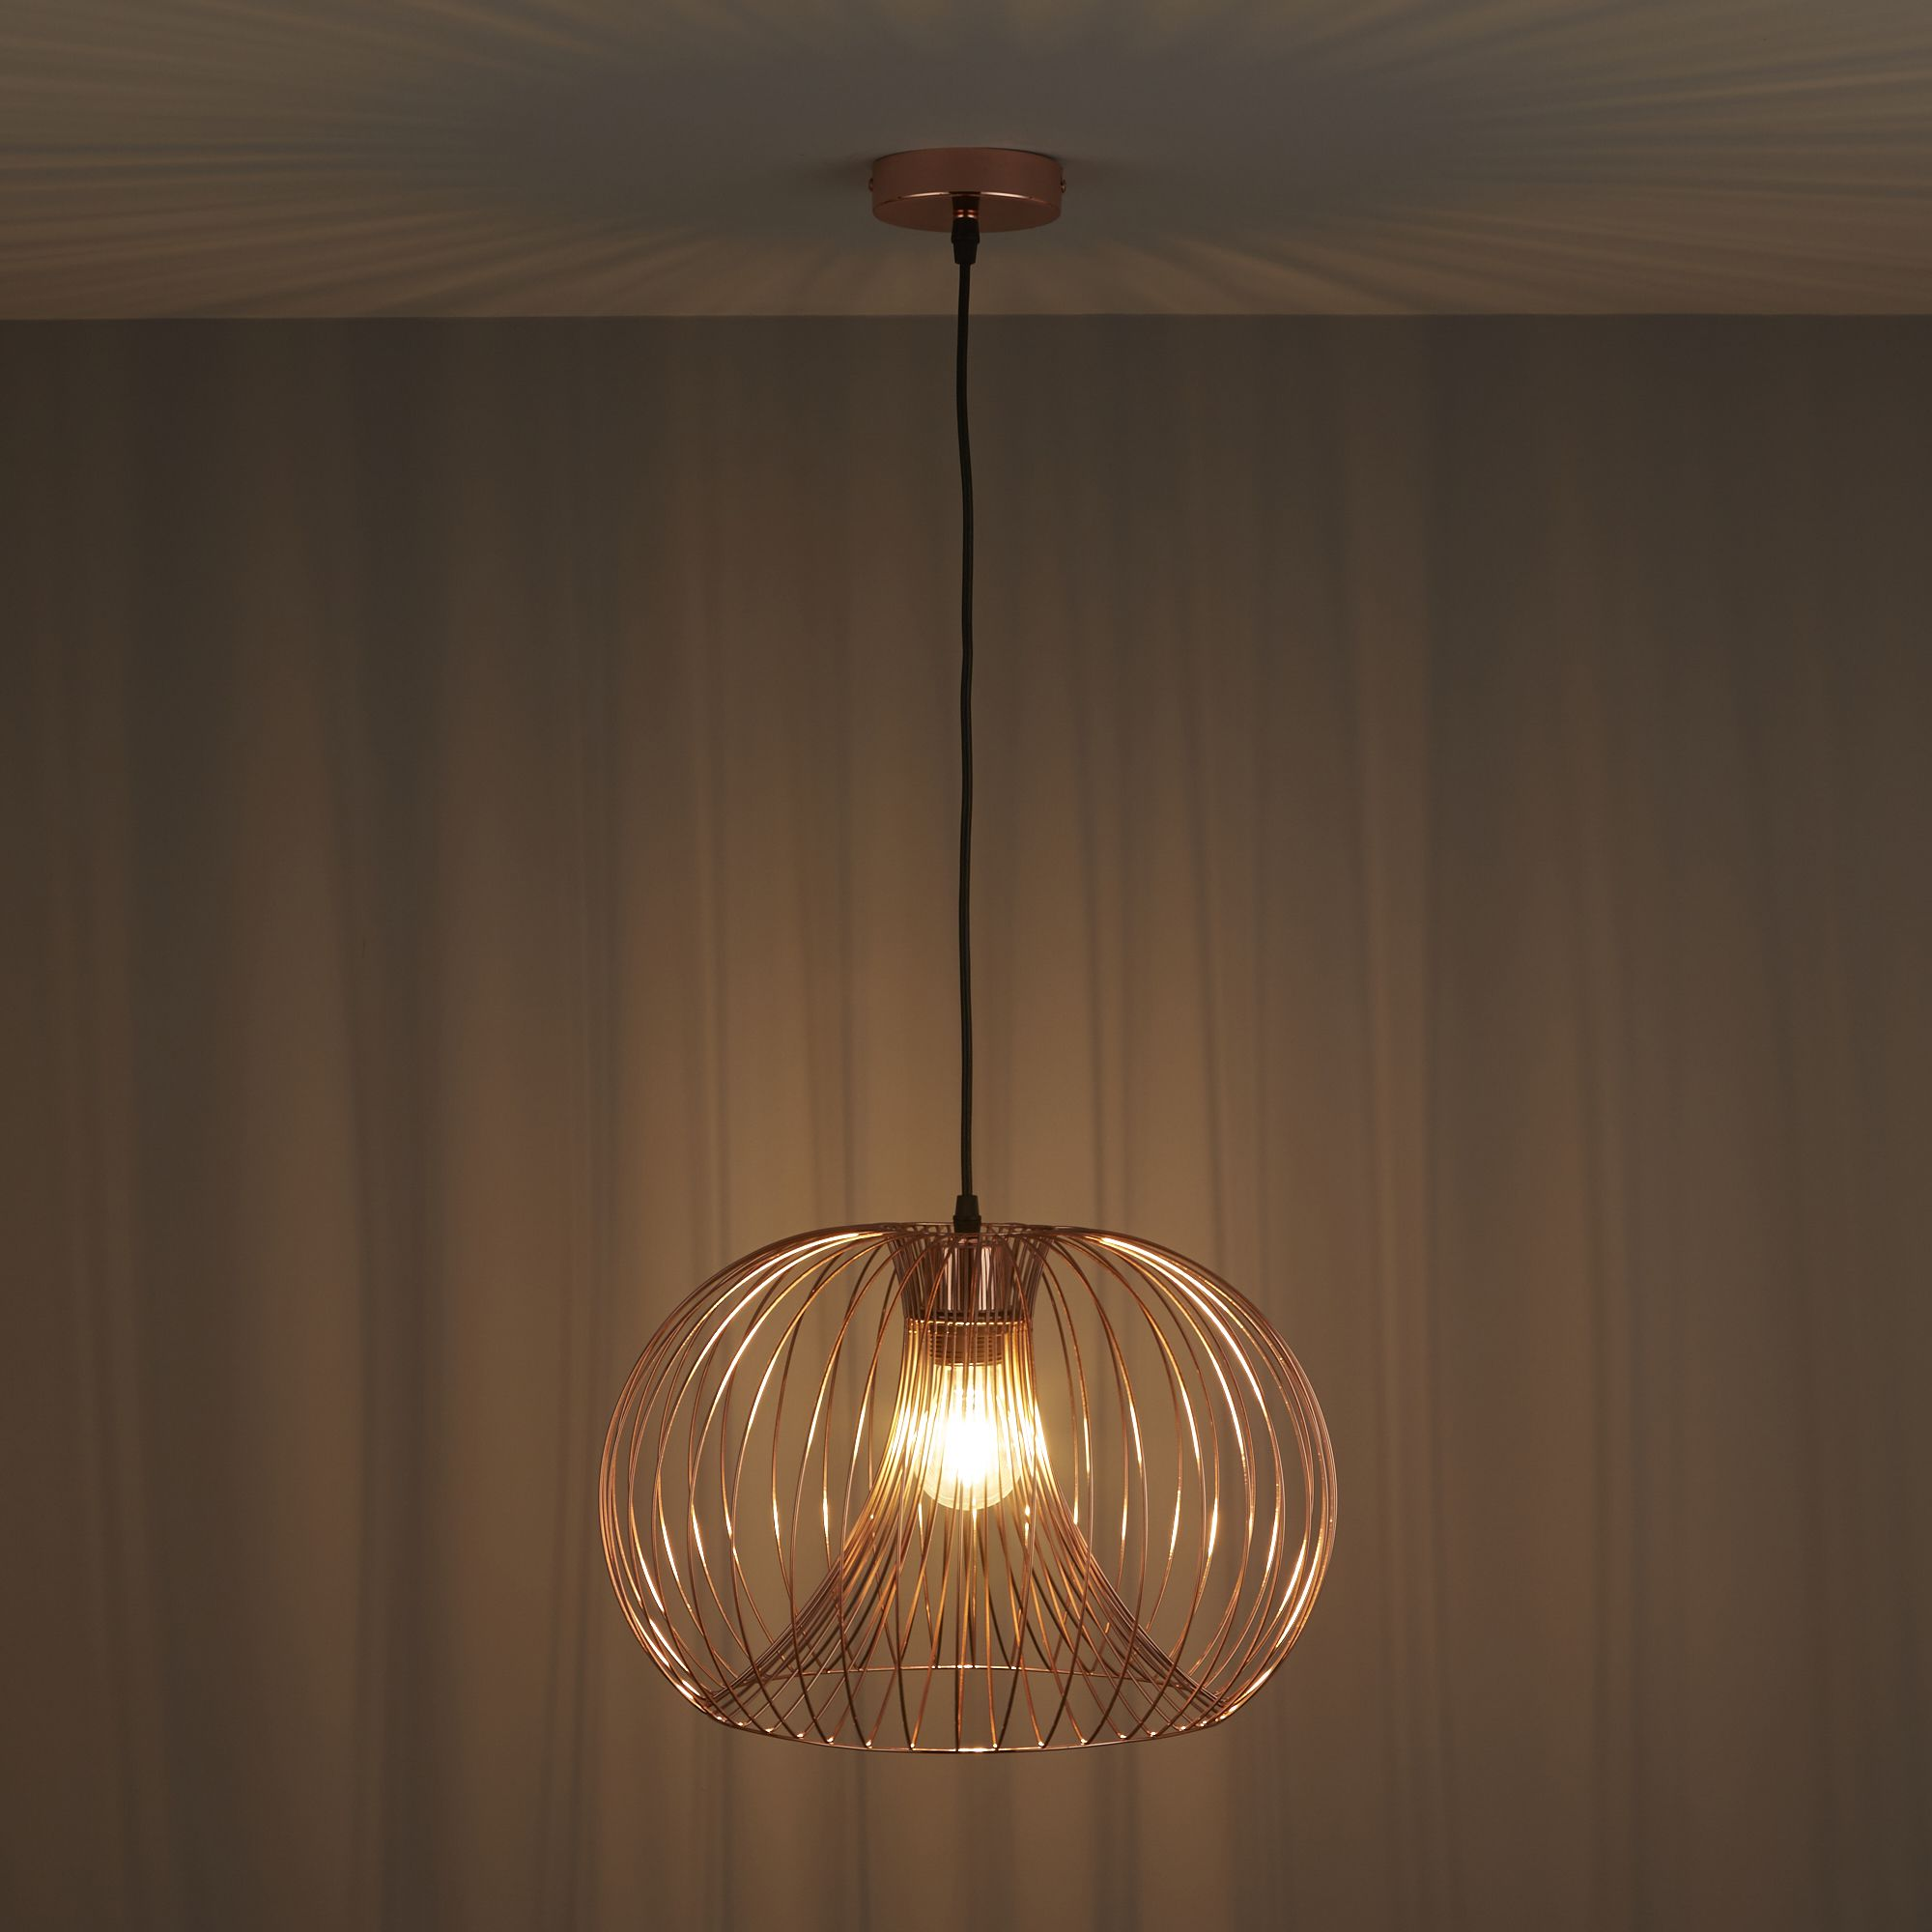 Diy at bq jonas wire copper pendant ceiling light keyboard keysfo Image collections